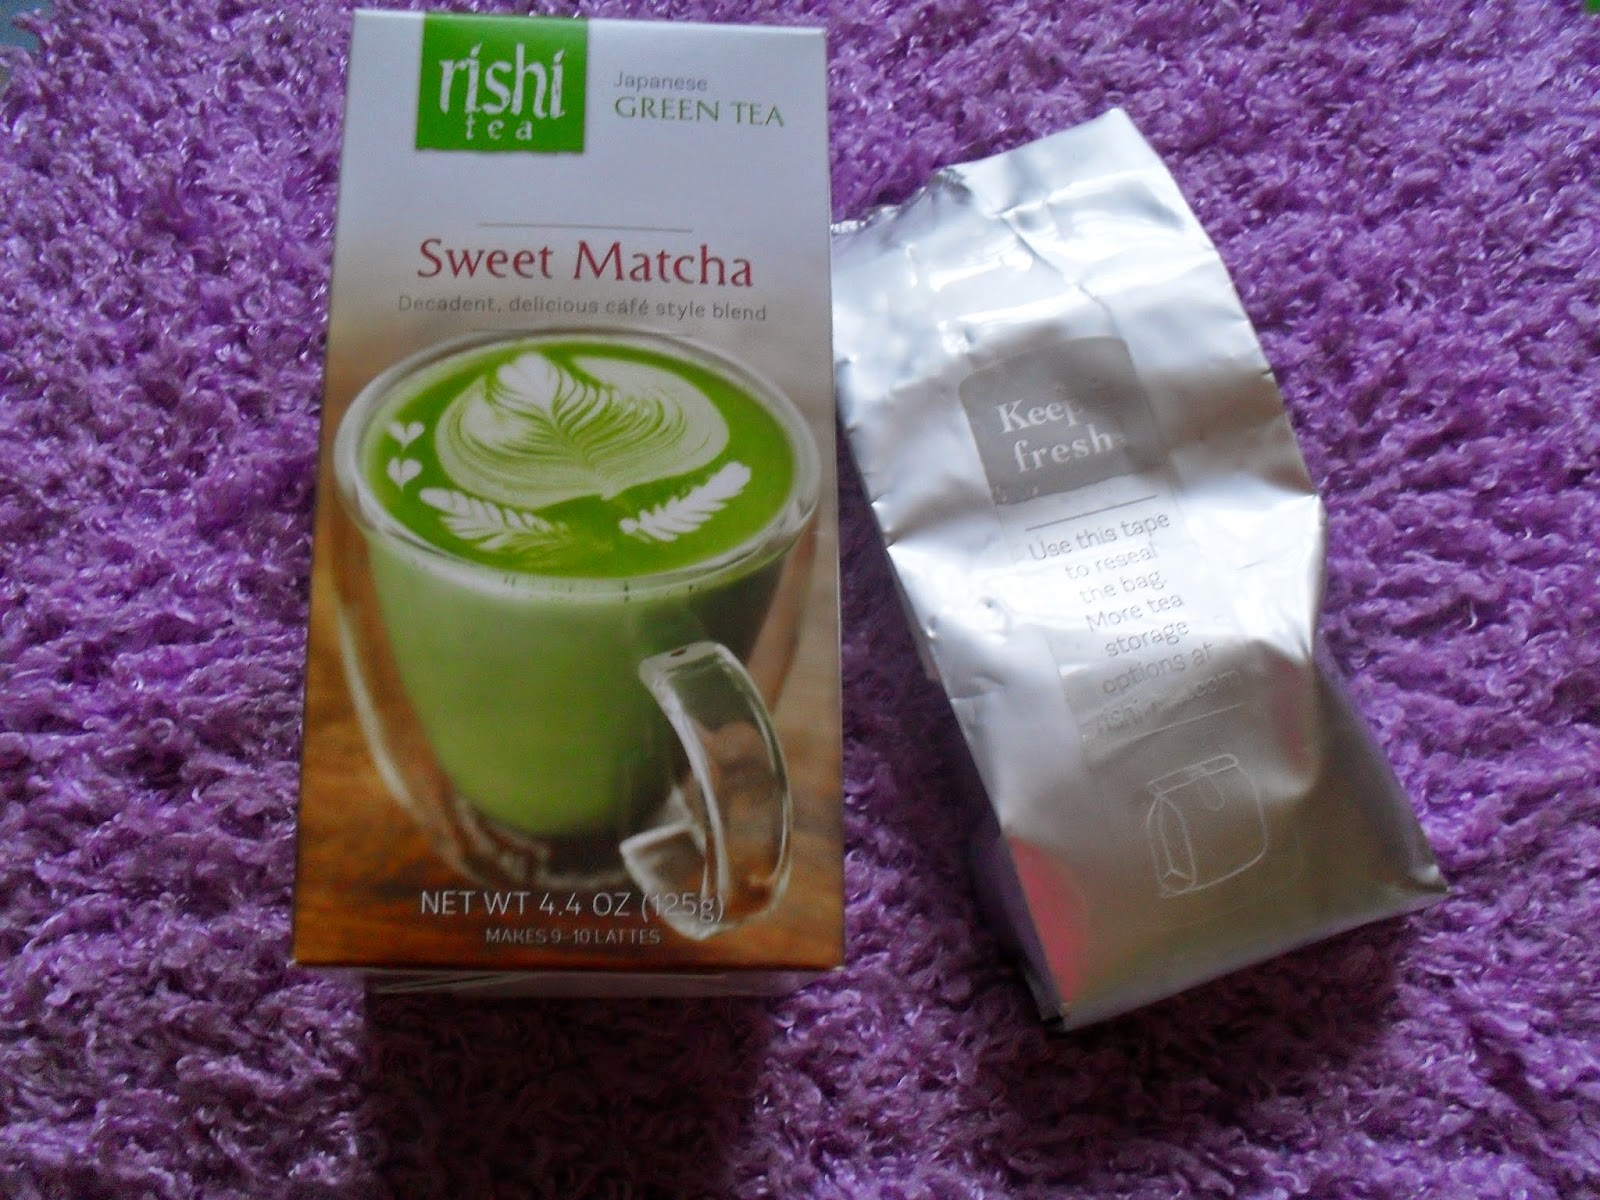 Rishi Tea, Japanese Green Tea, Sweet Matcha